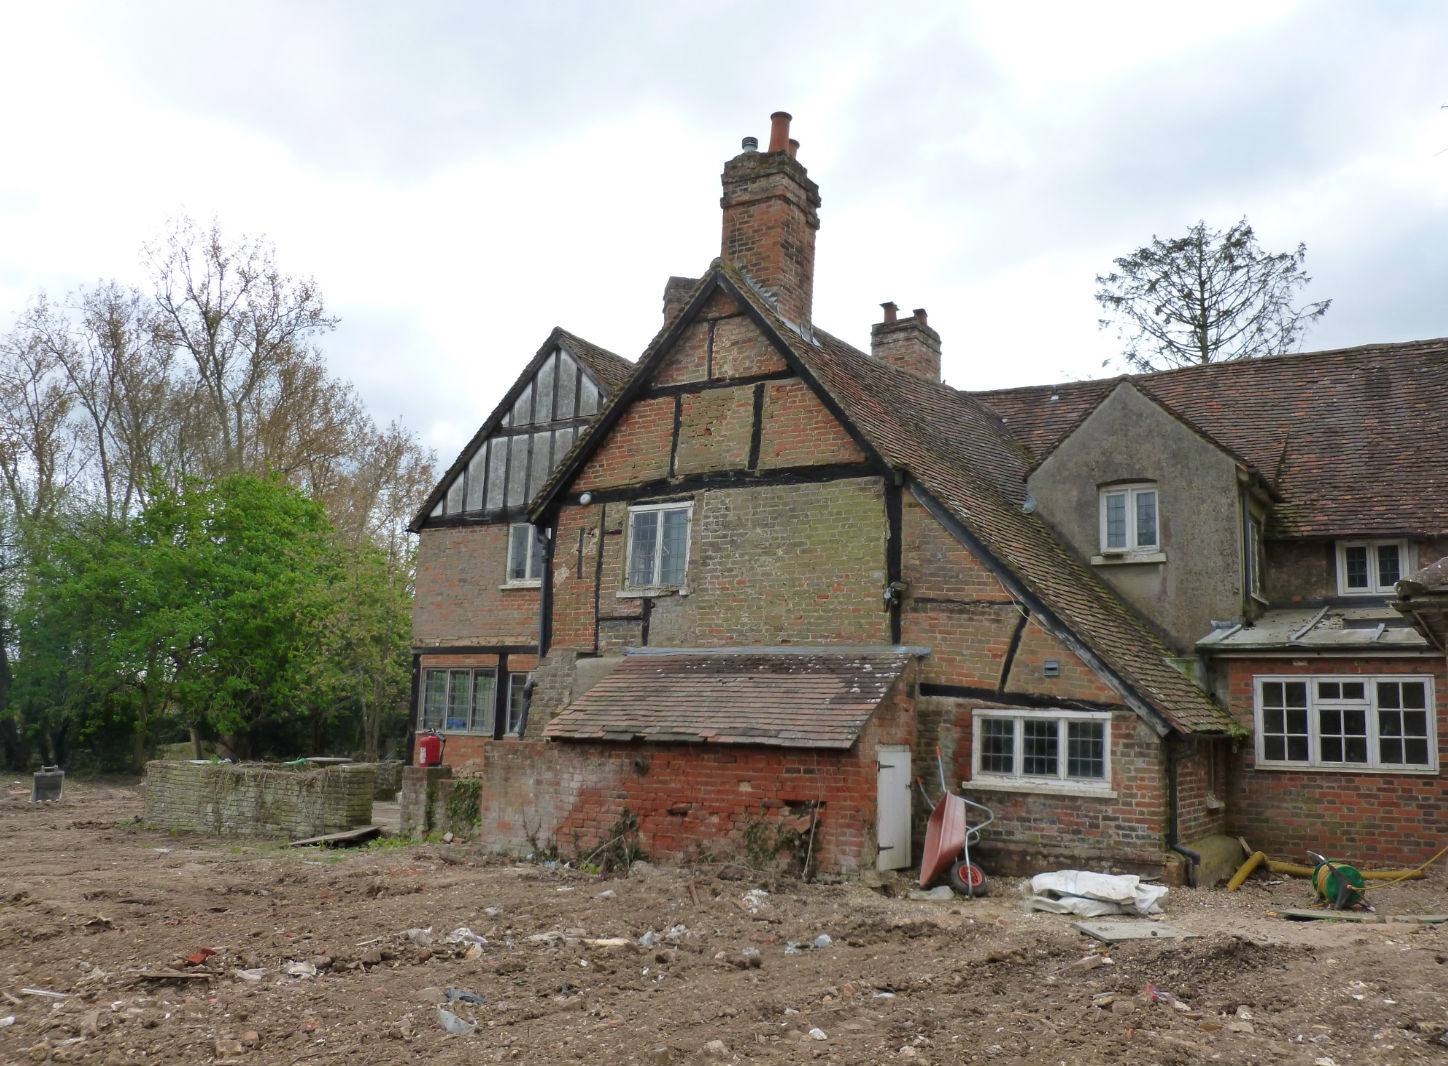 Private Residence, Buckinghamshire - Rear View - Before